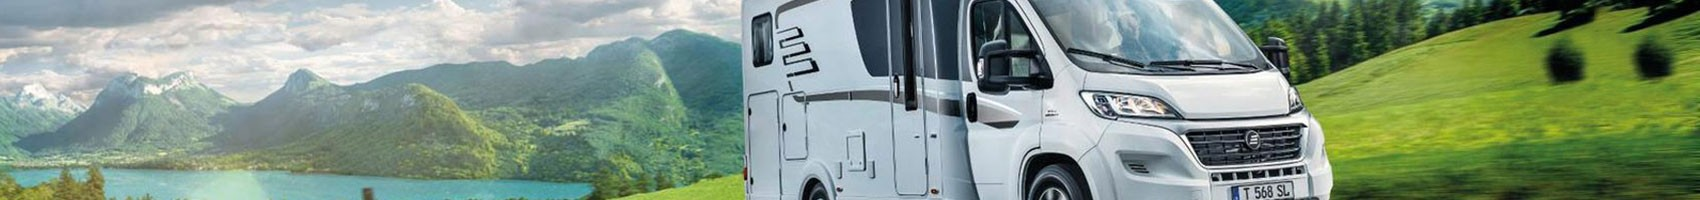 Check Out the New Chausson 611 Travel Motorhome